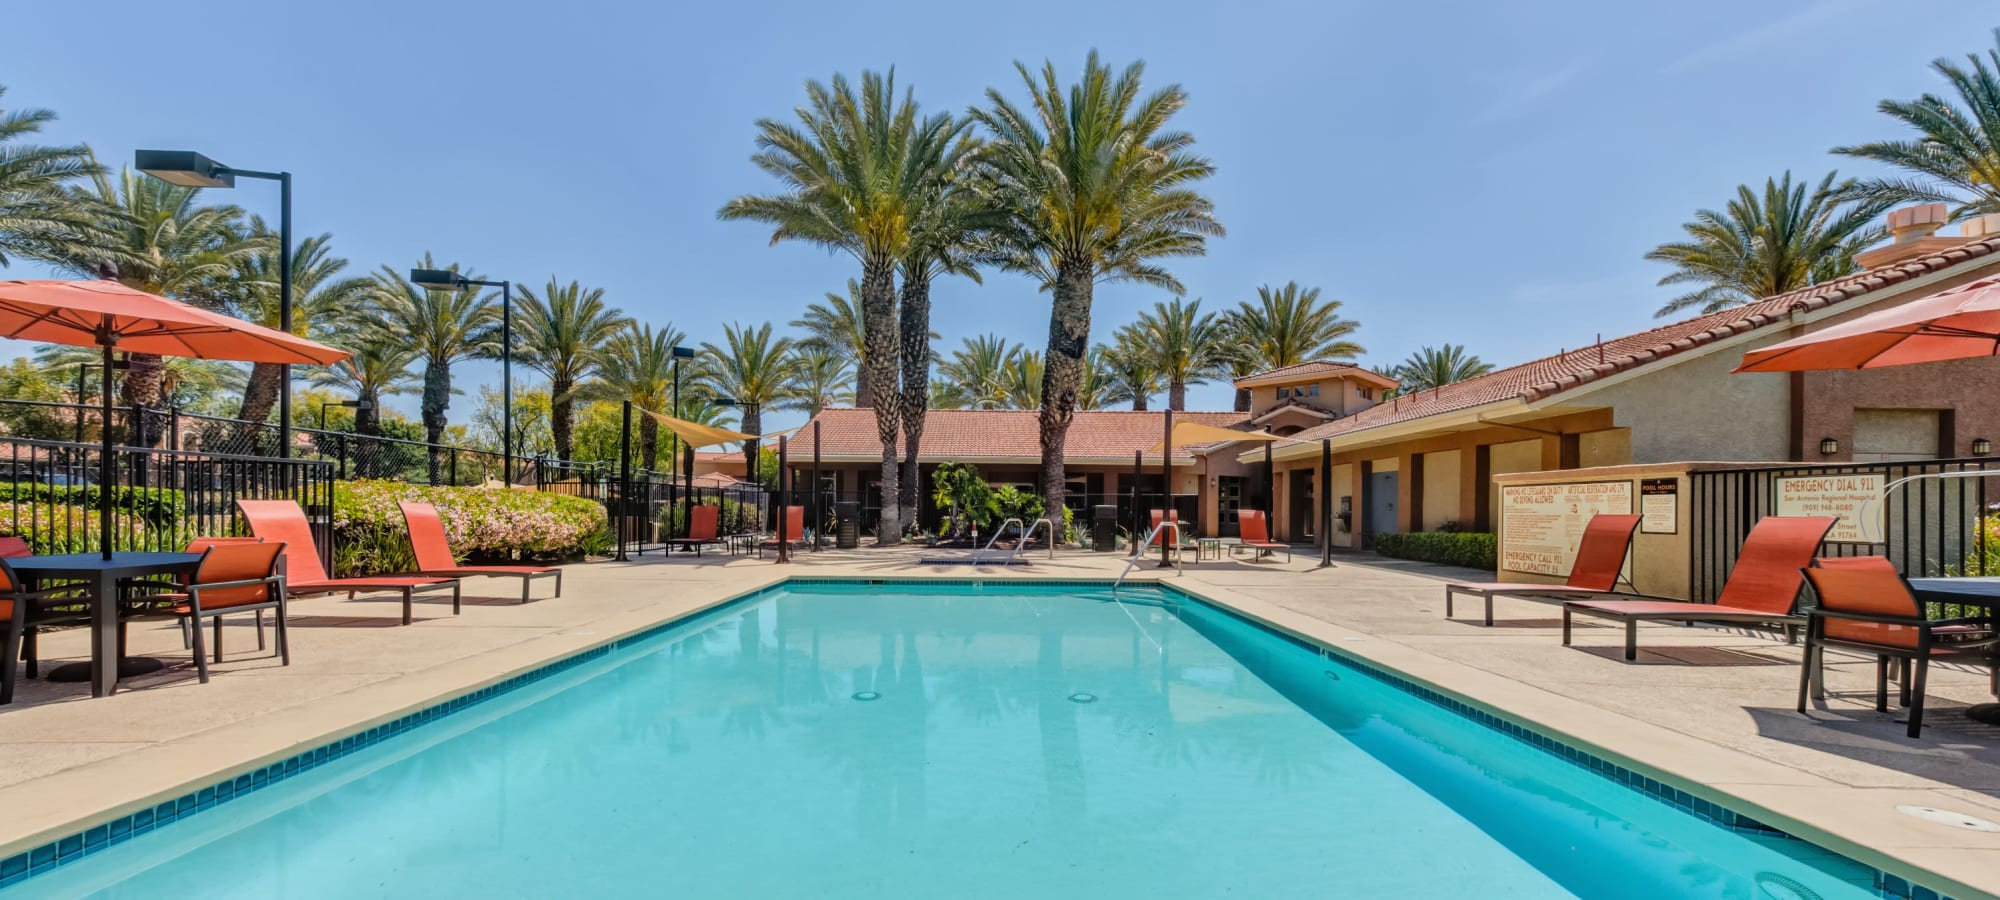 Tuscany Village Apartments in Ontario, California